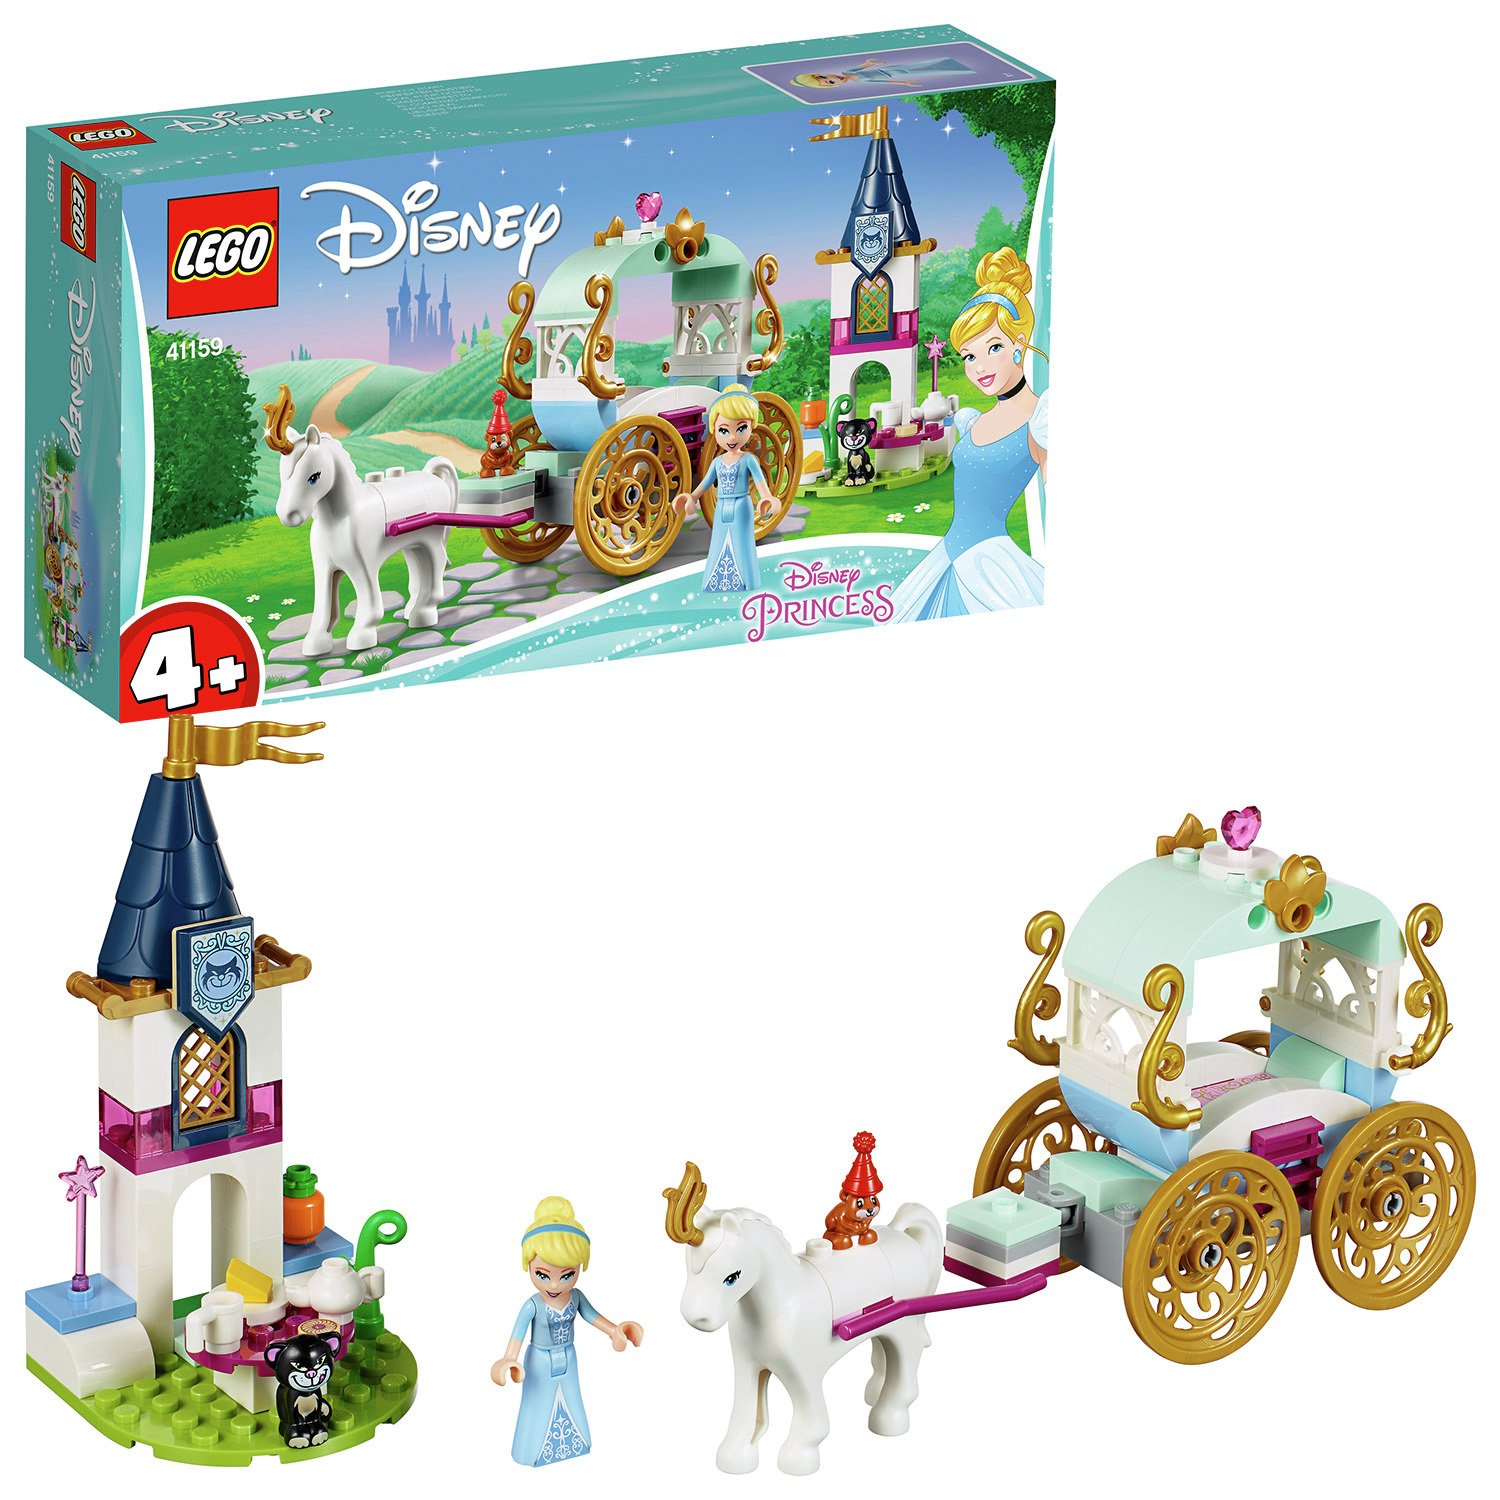 LEGO Disney Princess Cinderella Carriage - 41159